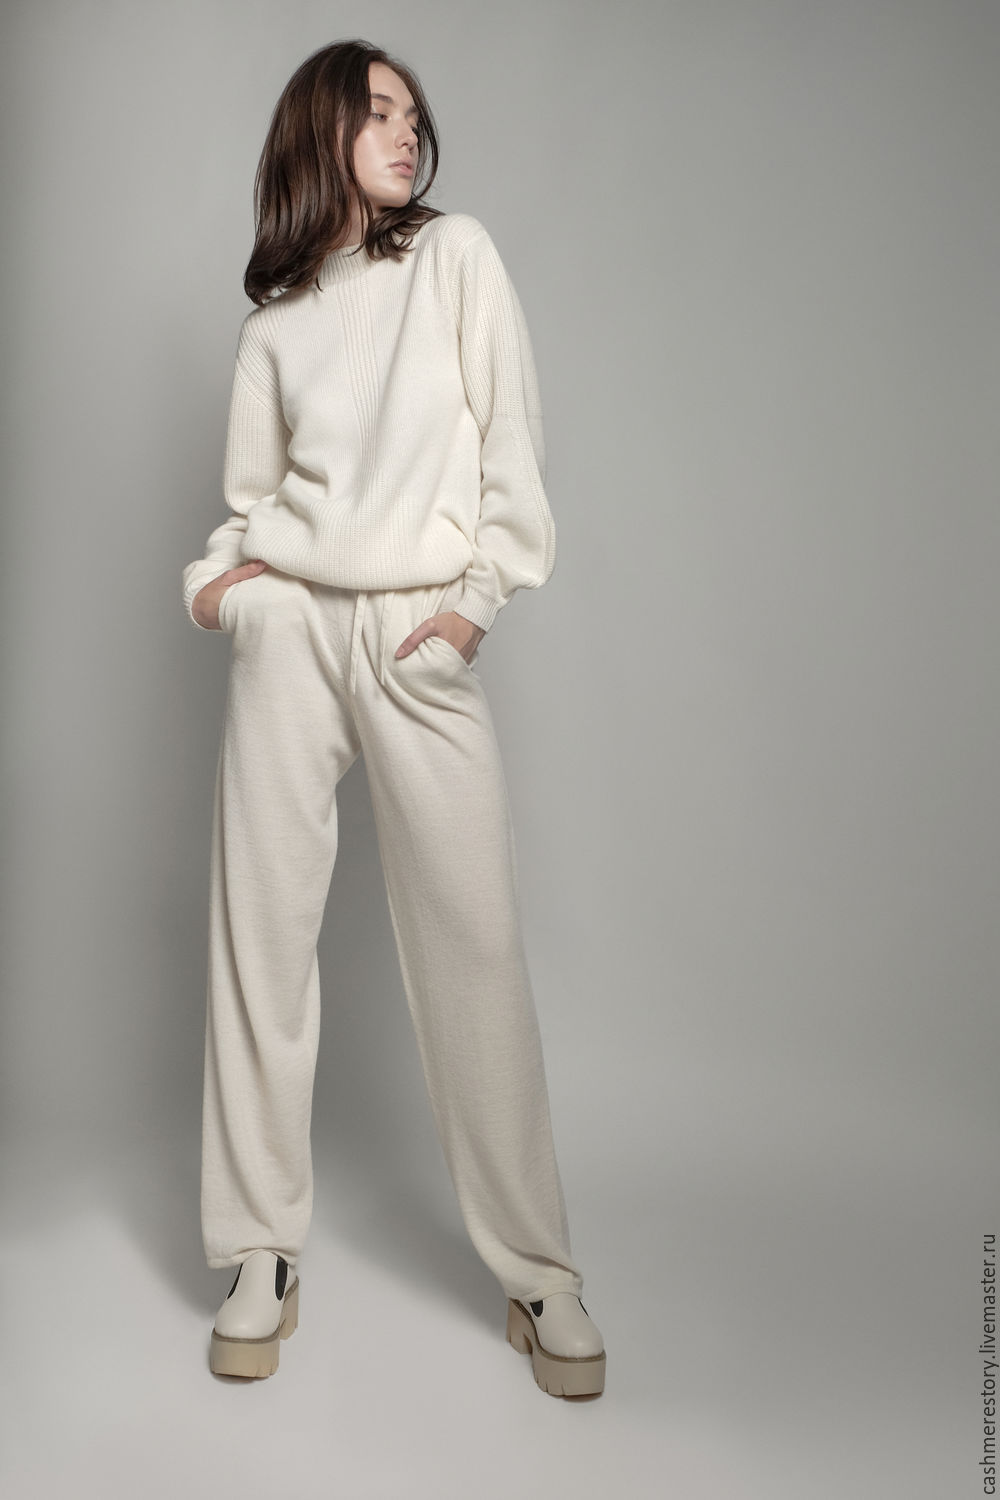 Pants knitted women's BIANCO, Pants, Moscow,  Фото №1